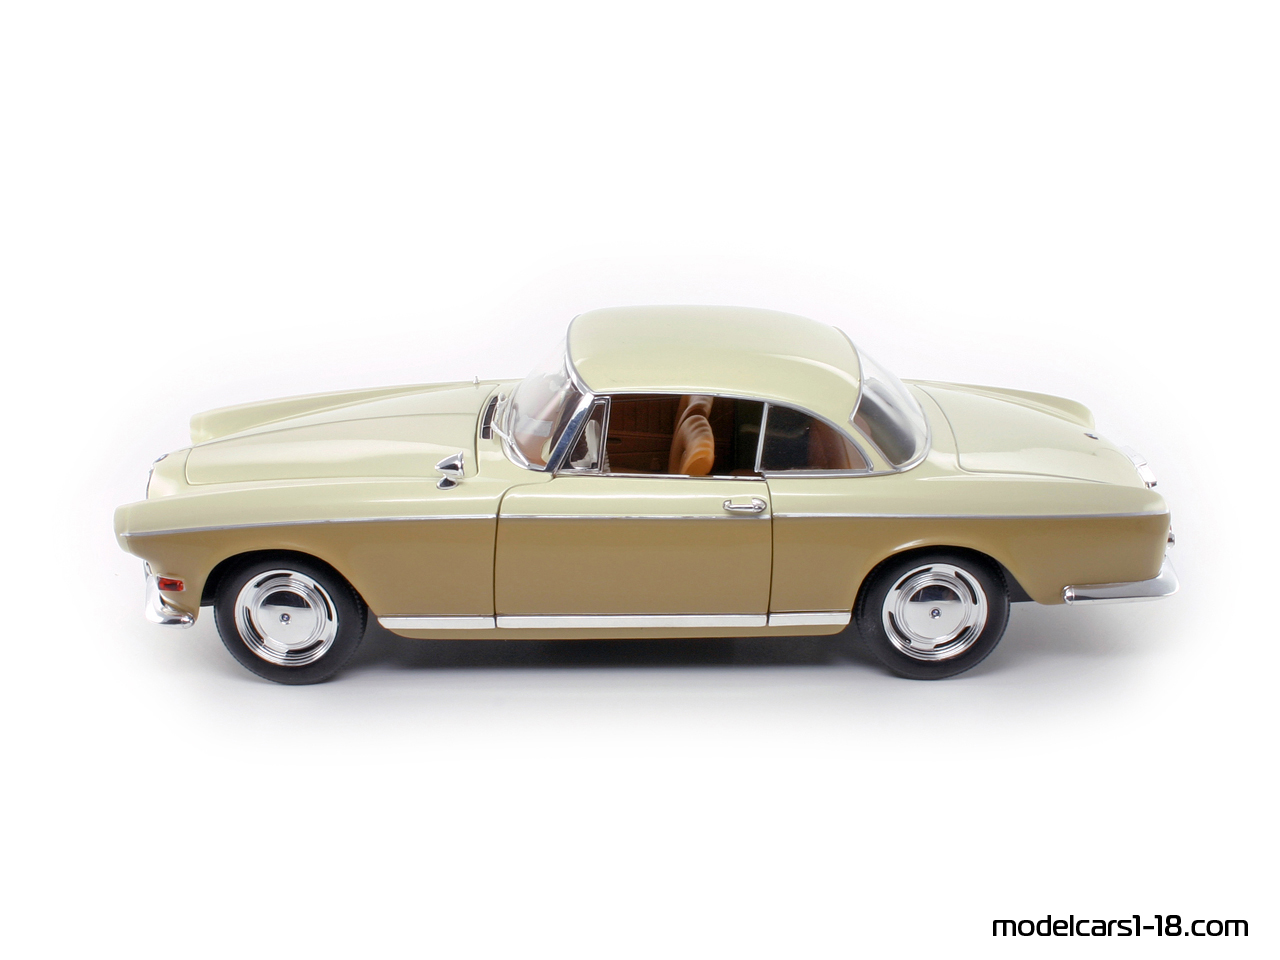 1956 - BMW 503 coupe Revell 1/18 - Gallery